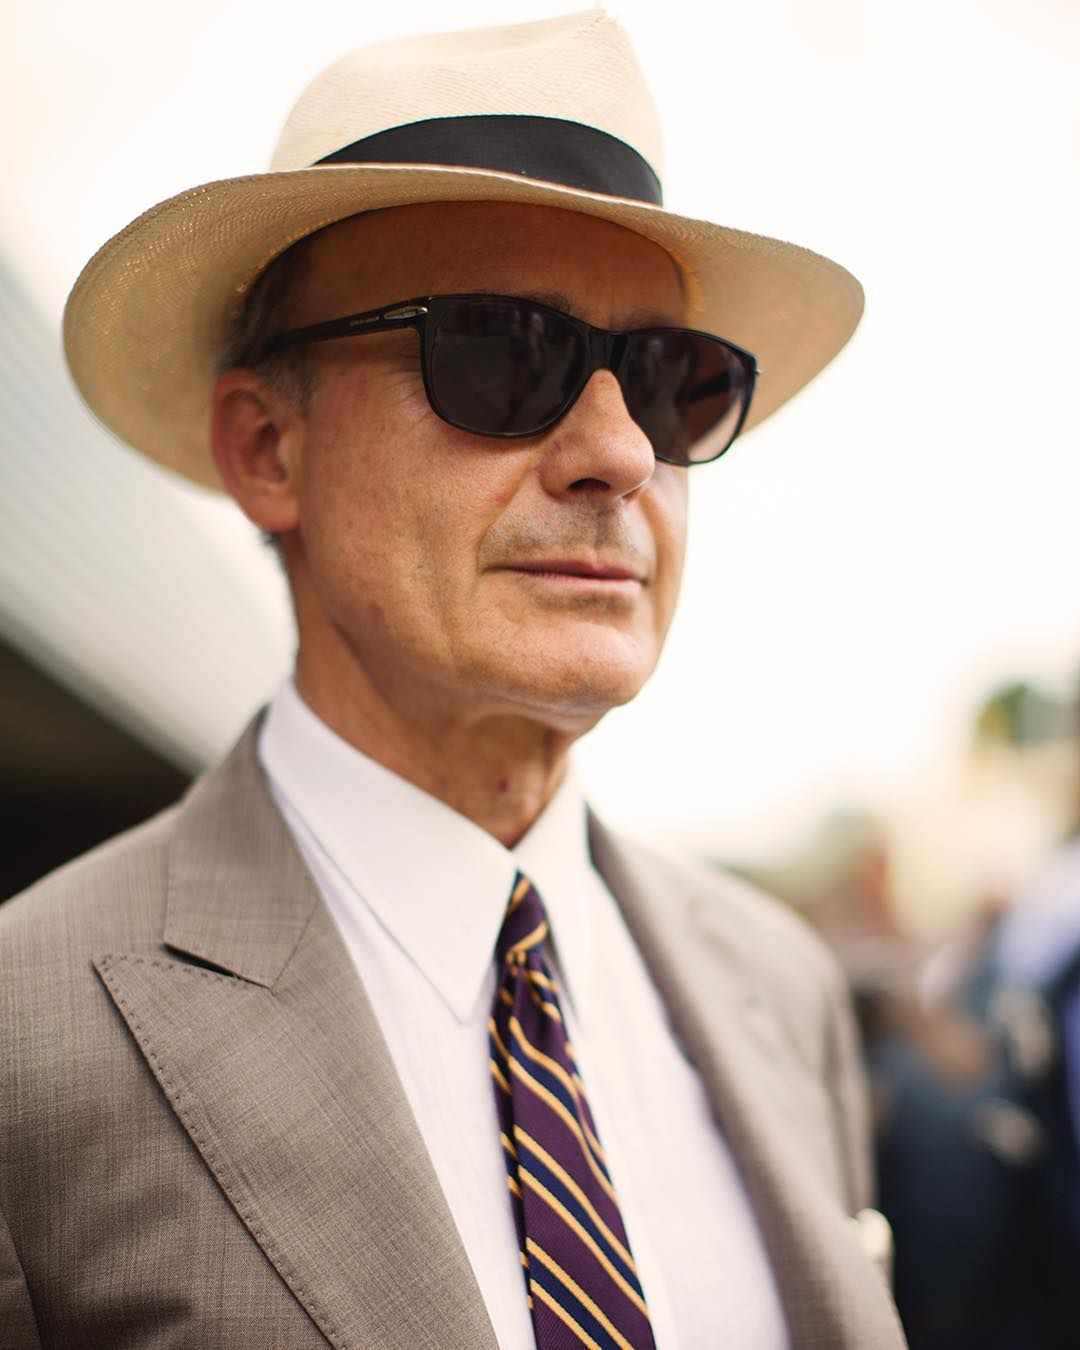 thesartorialist Il Capo! I don't know if that's correct ...